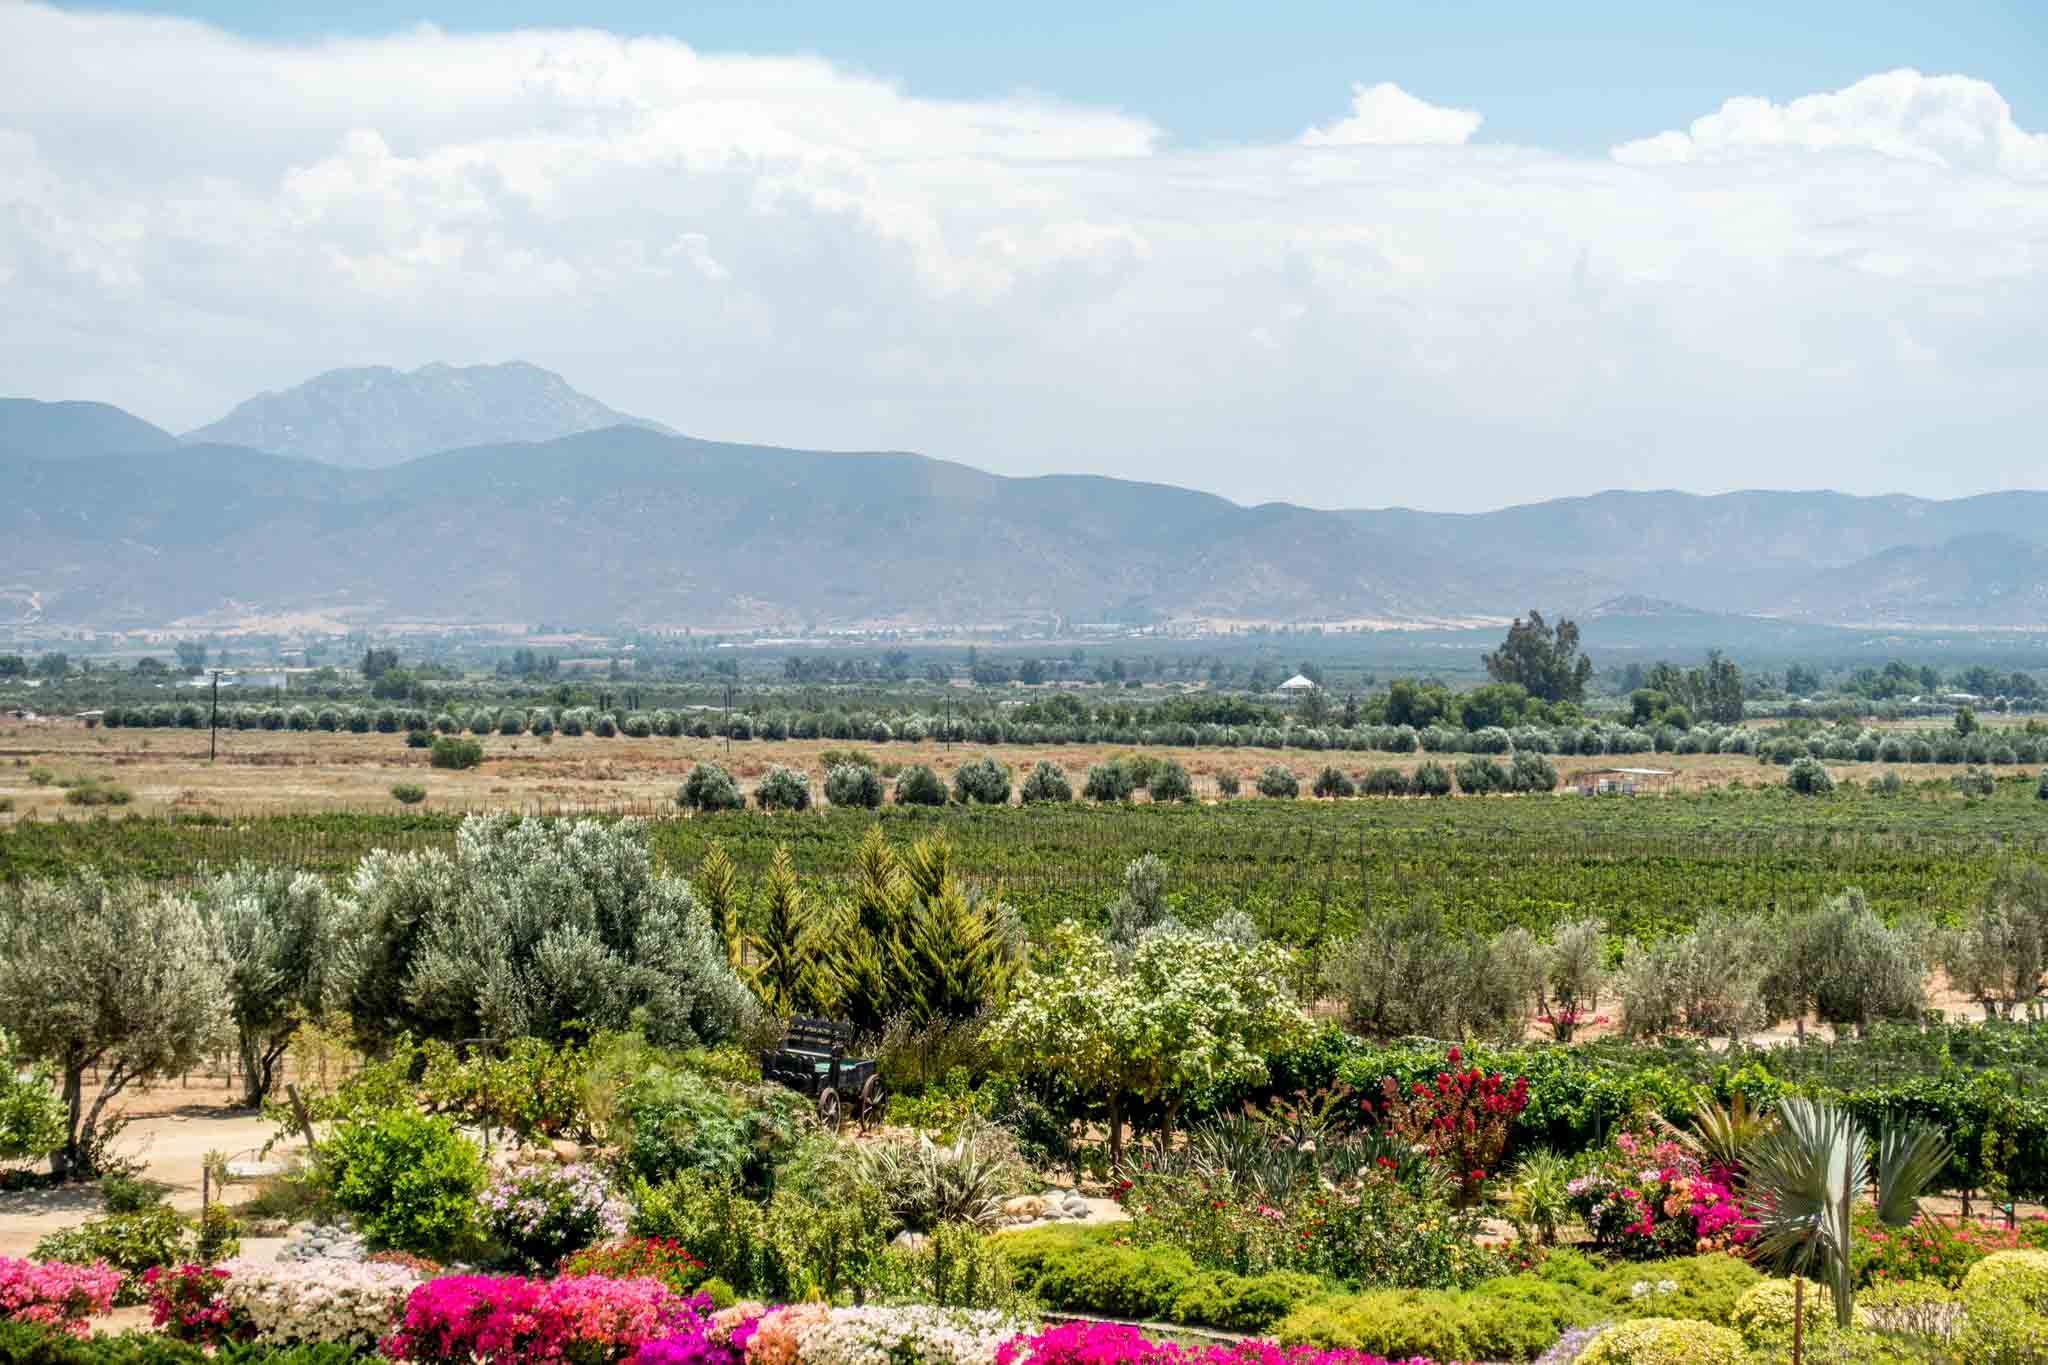 The hills and vineyards of the Valle de Guadalupe of Baja, Mexico.